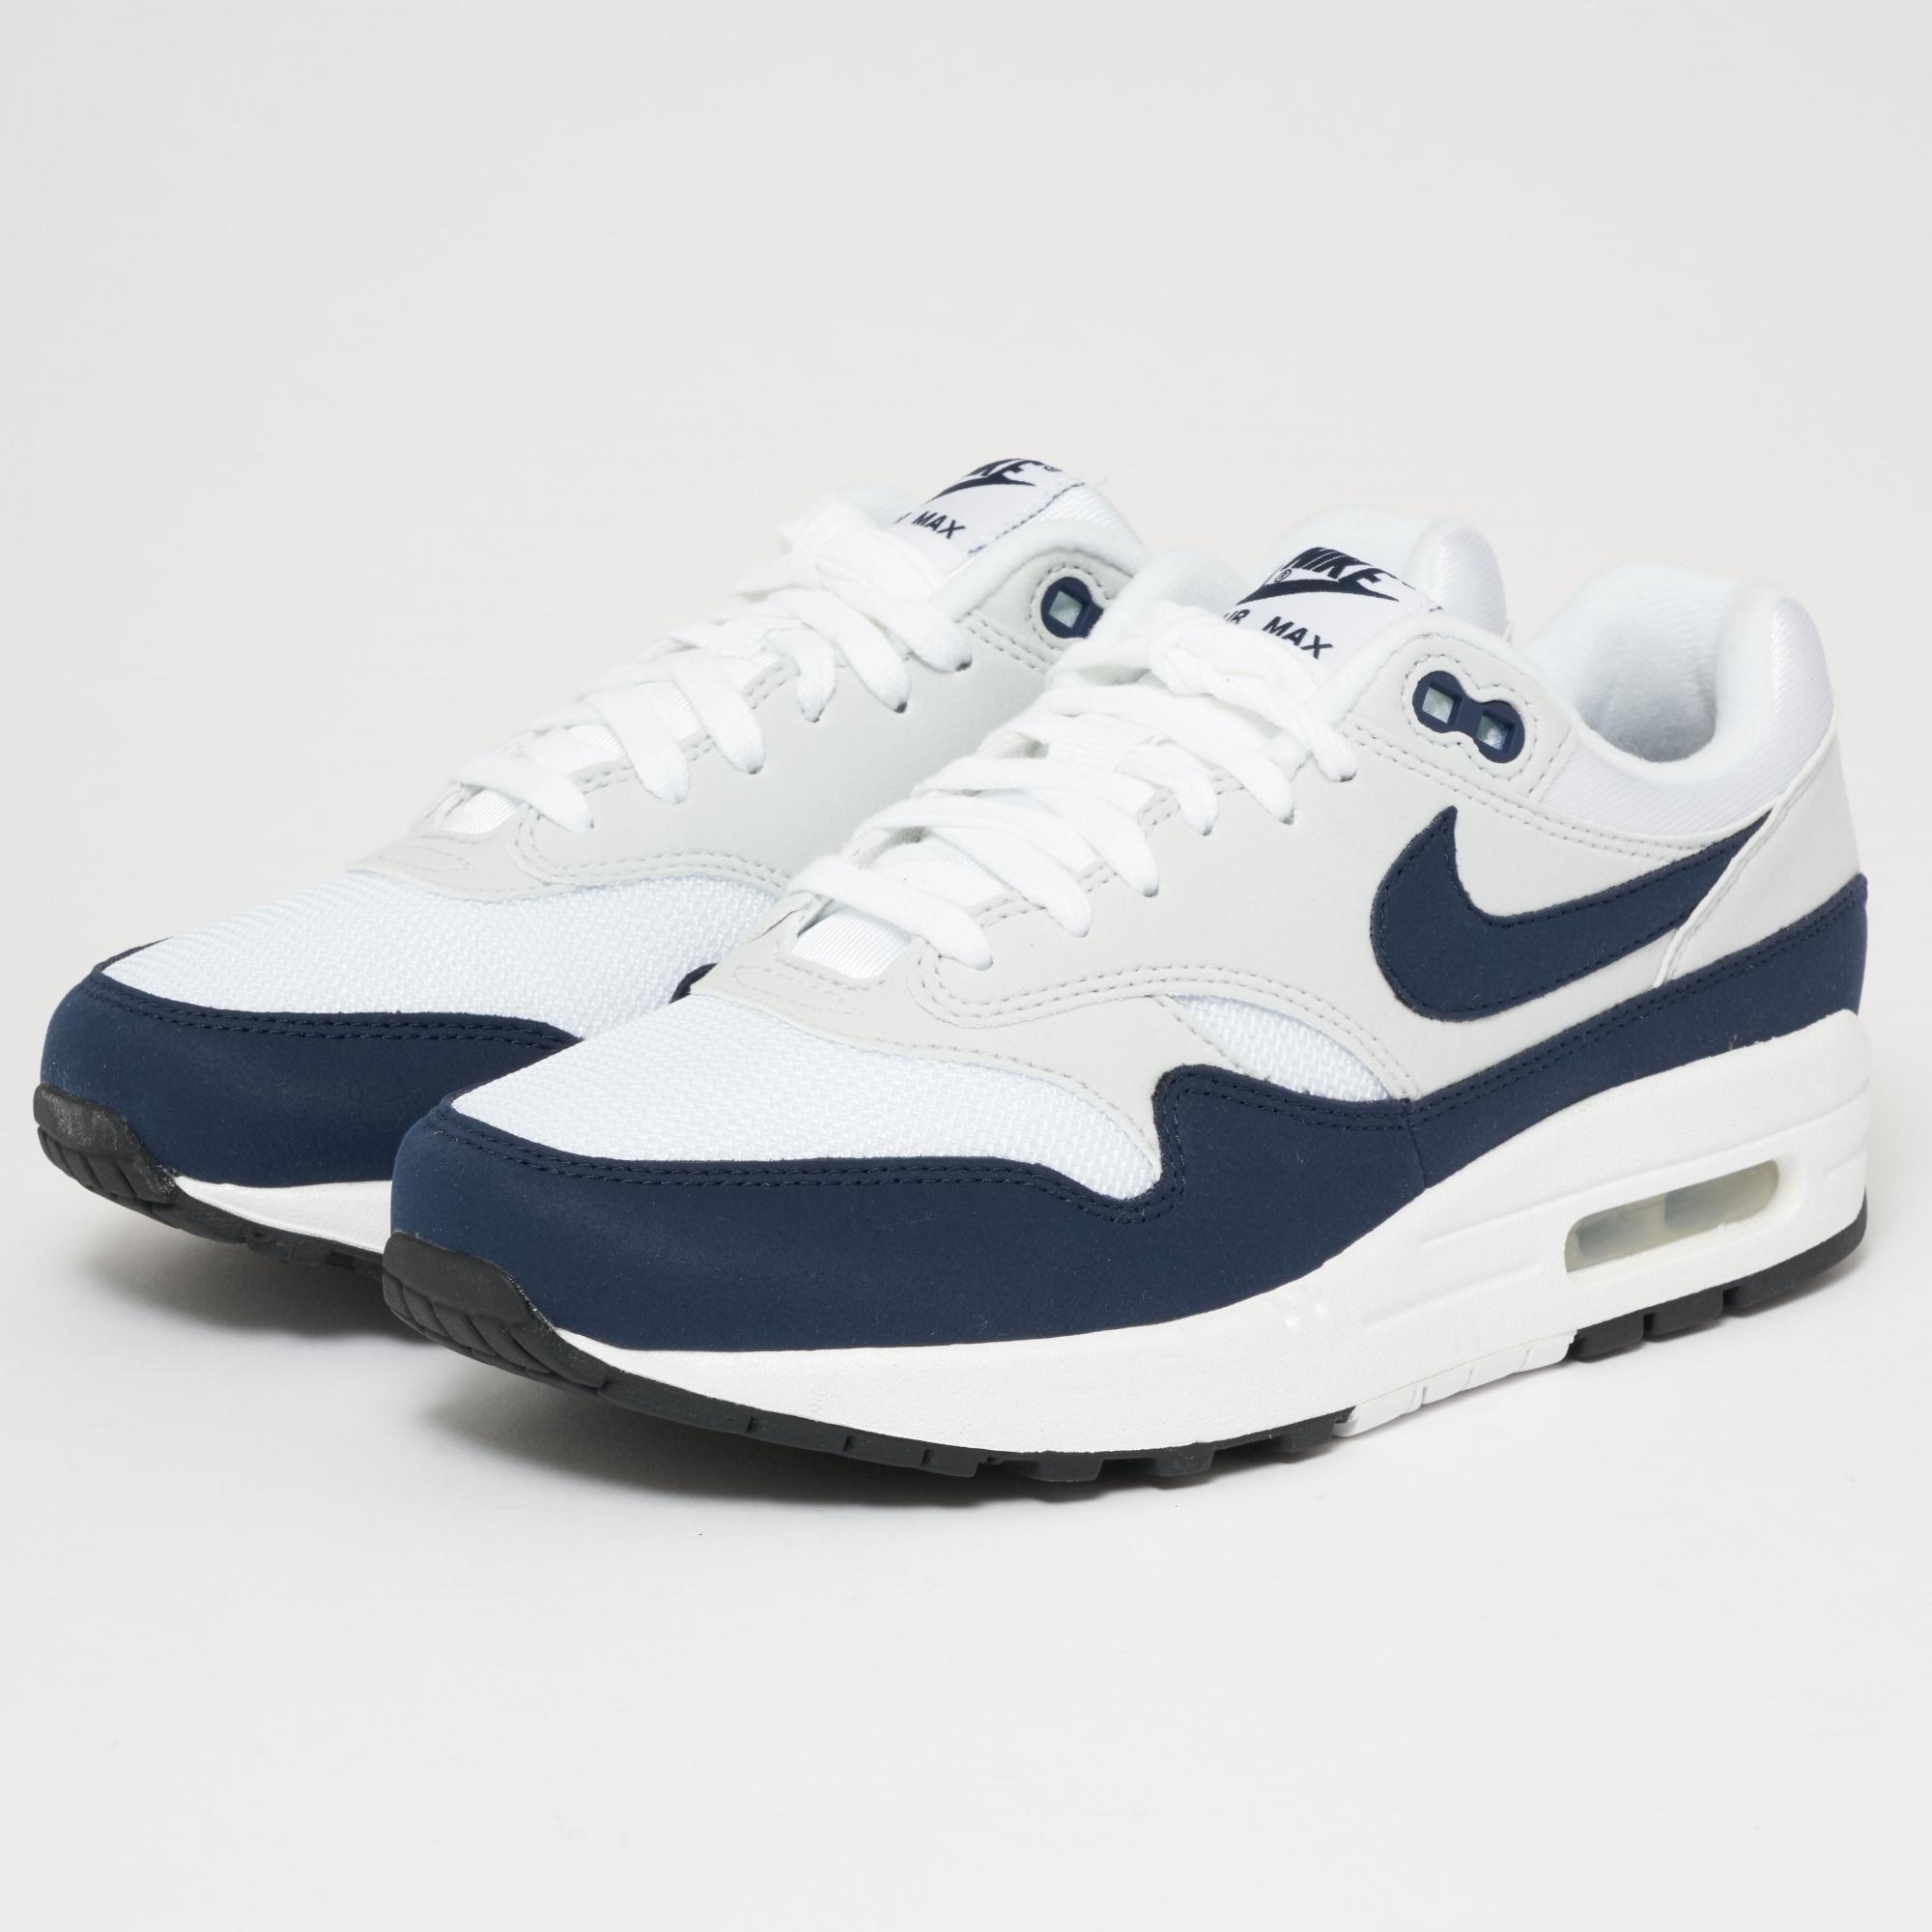 853b66de3cea Lyst - Nike Air Max 1 - White   Obsidian in White for Men